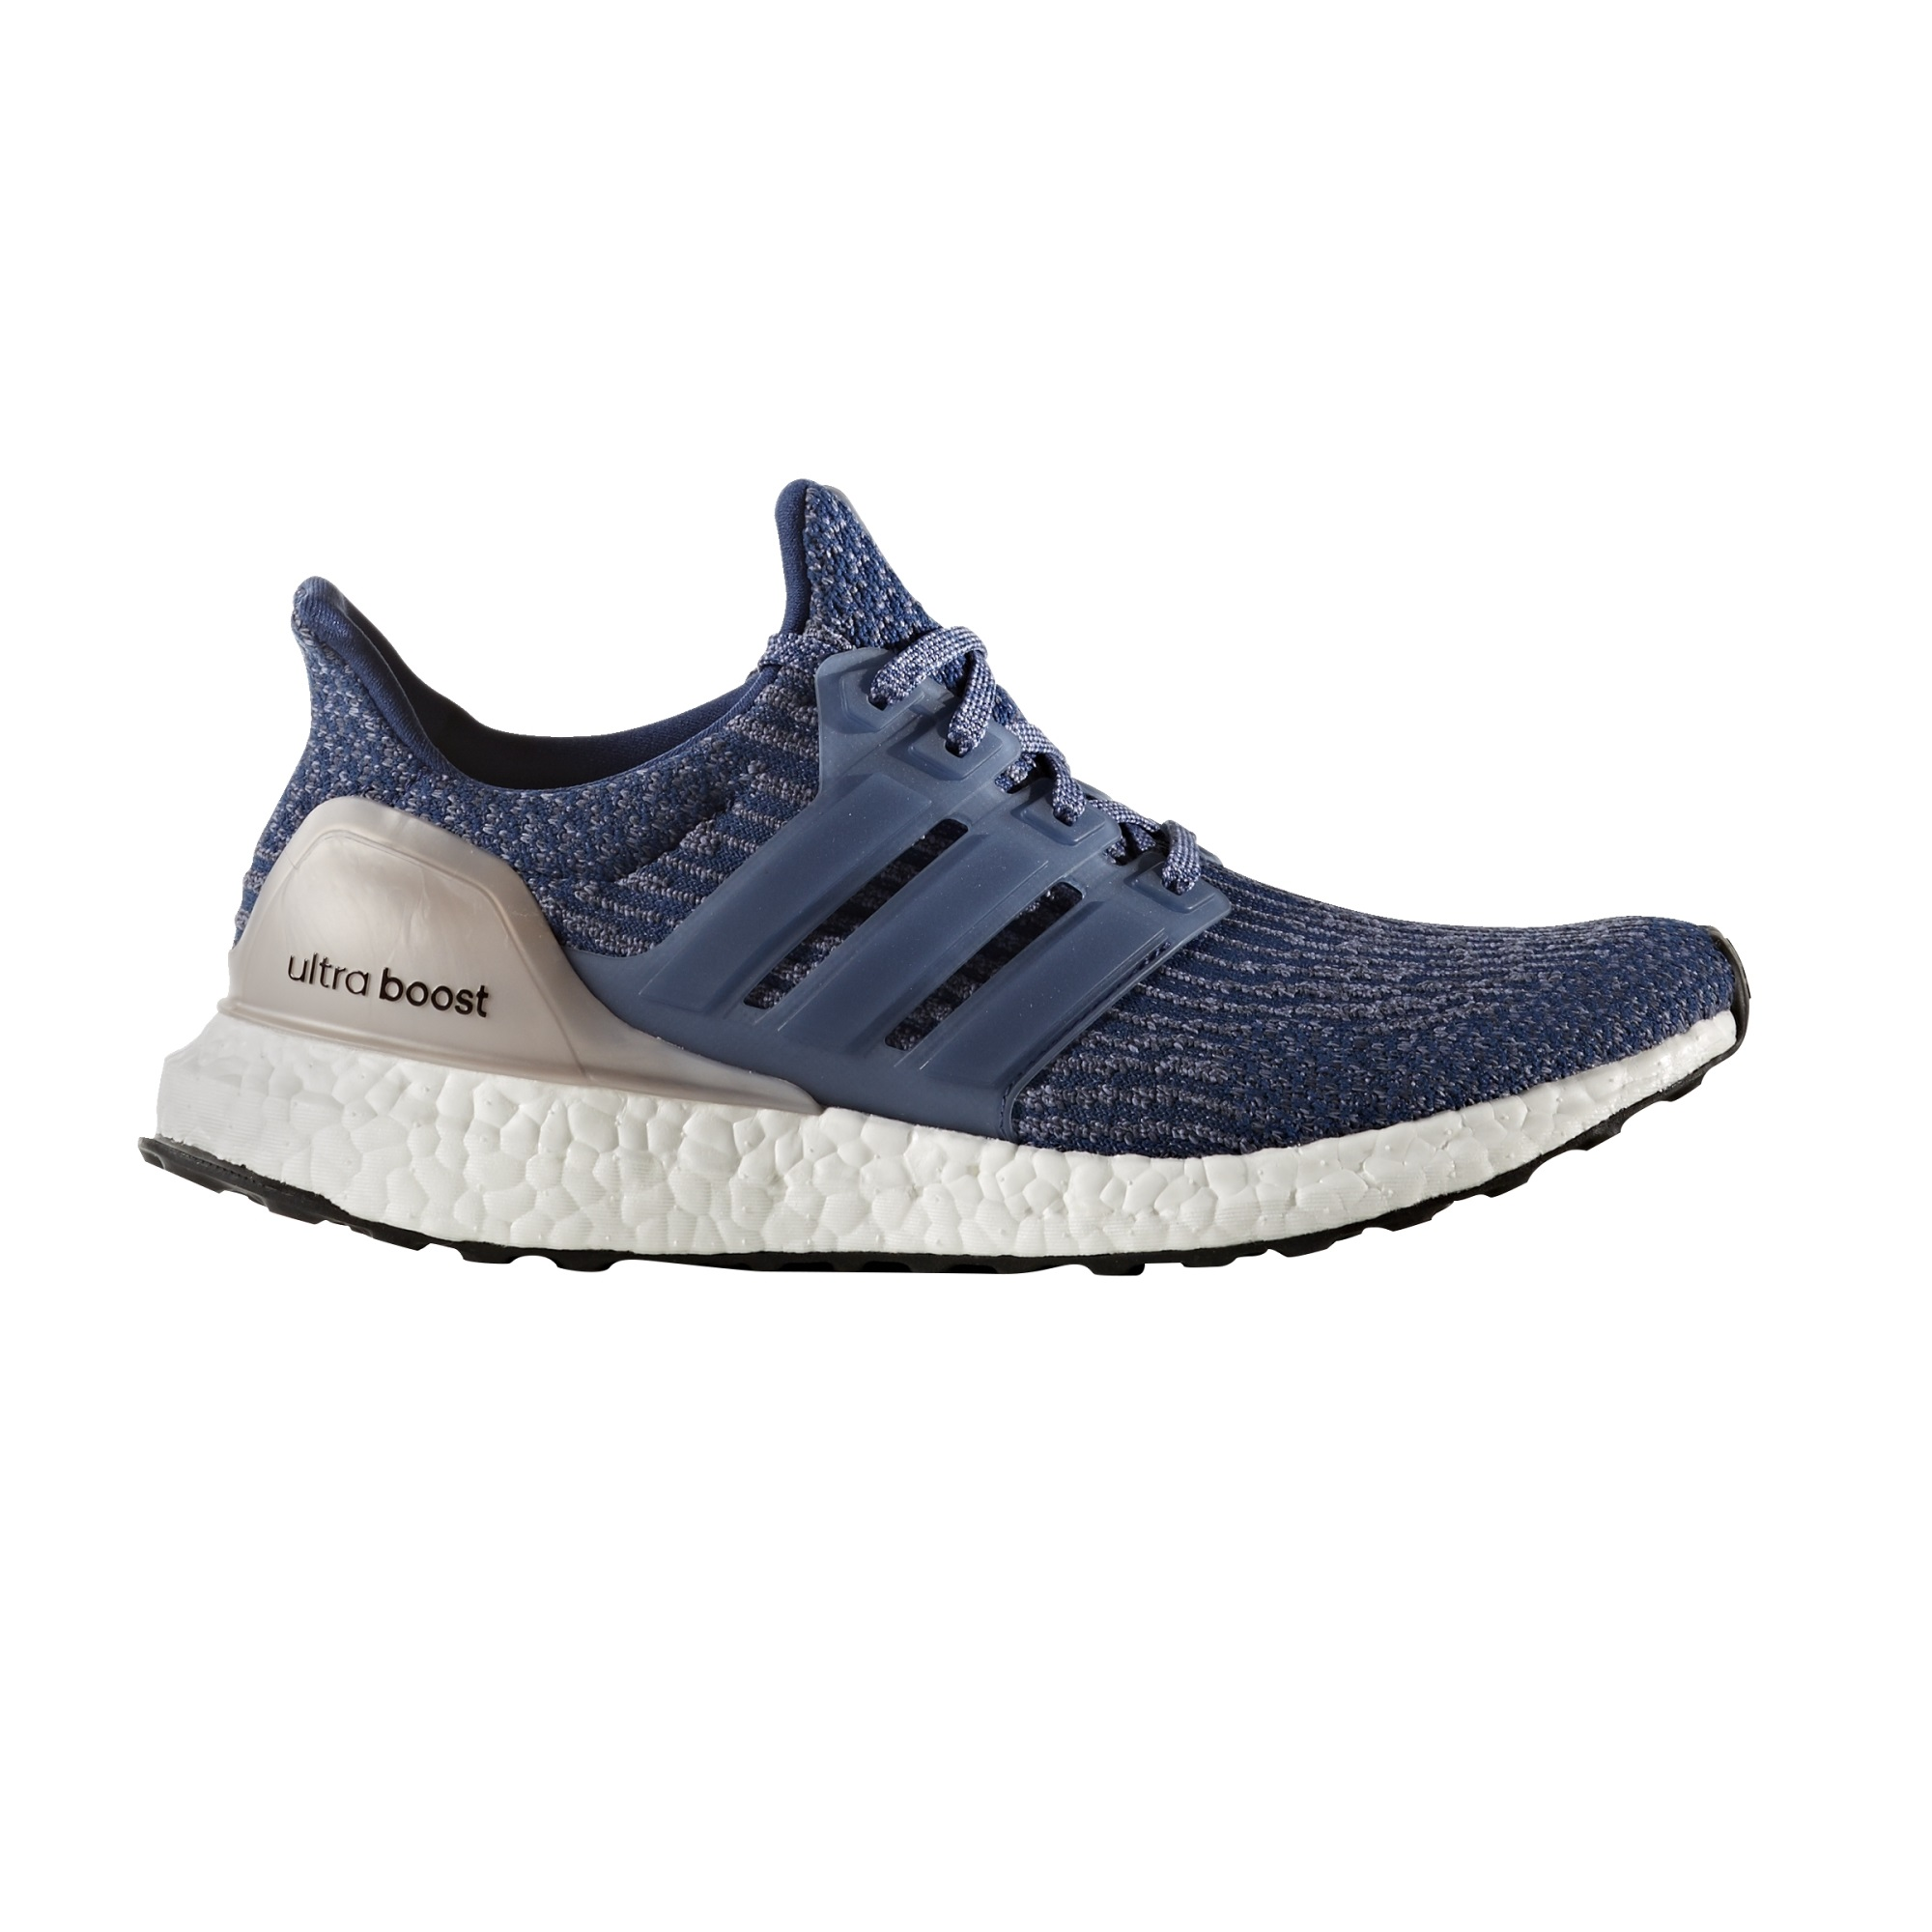 03f3f0d1a Adidas UltraBoost ST Womens Running Shoes - Alton Sports